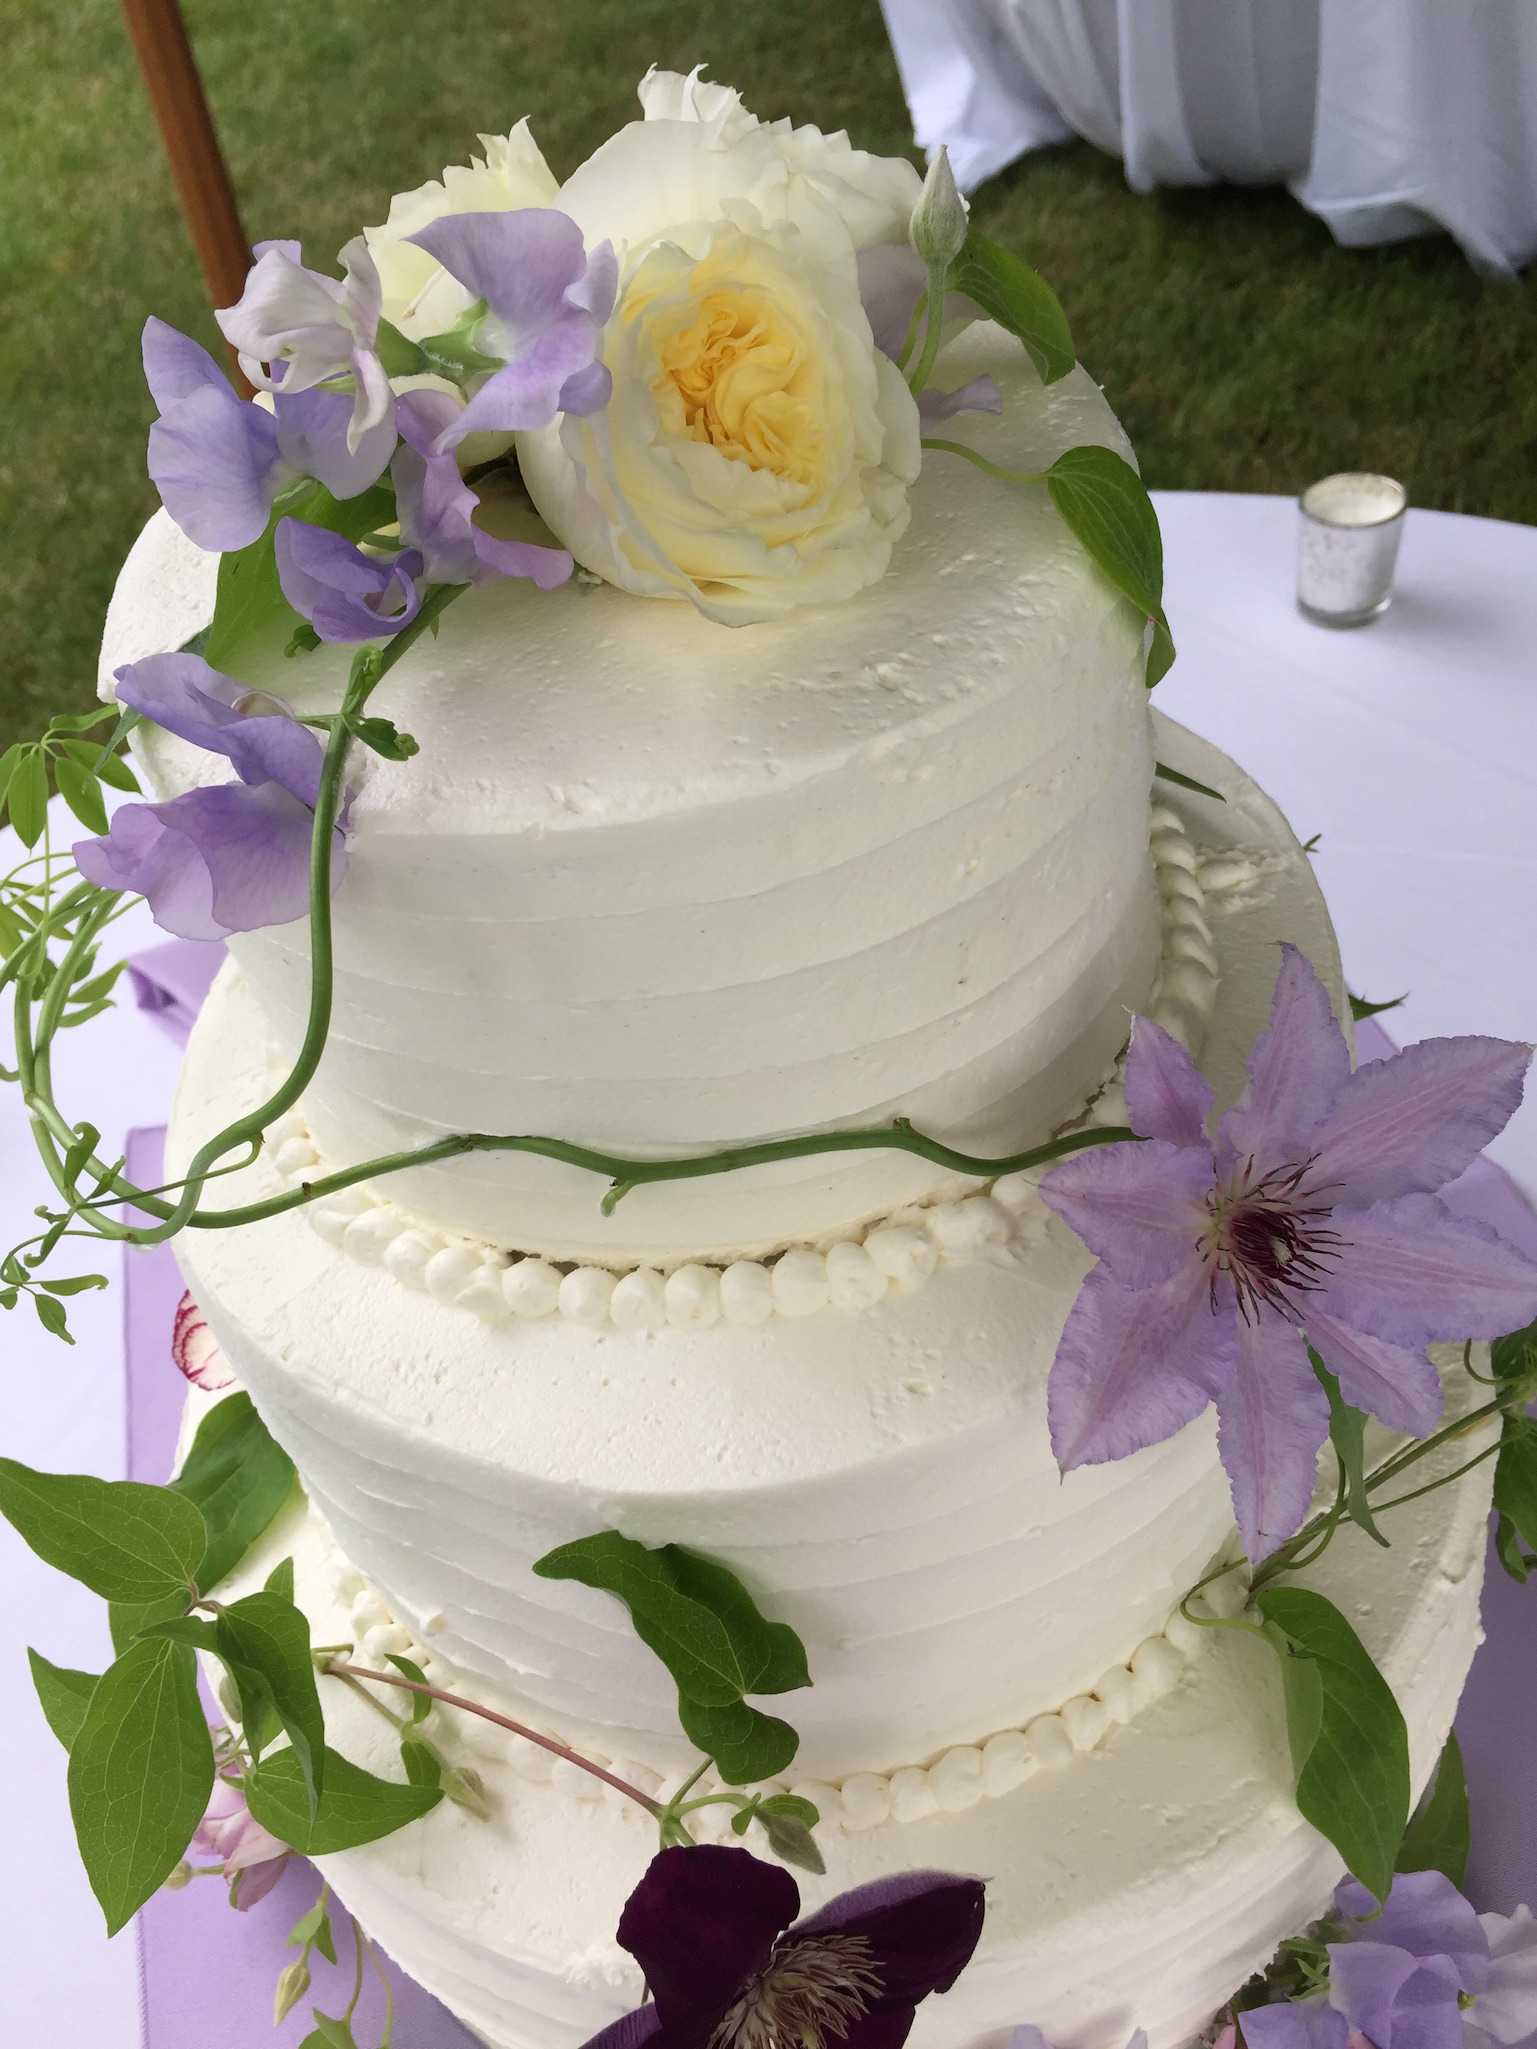 Wedding cake decorated with clematis